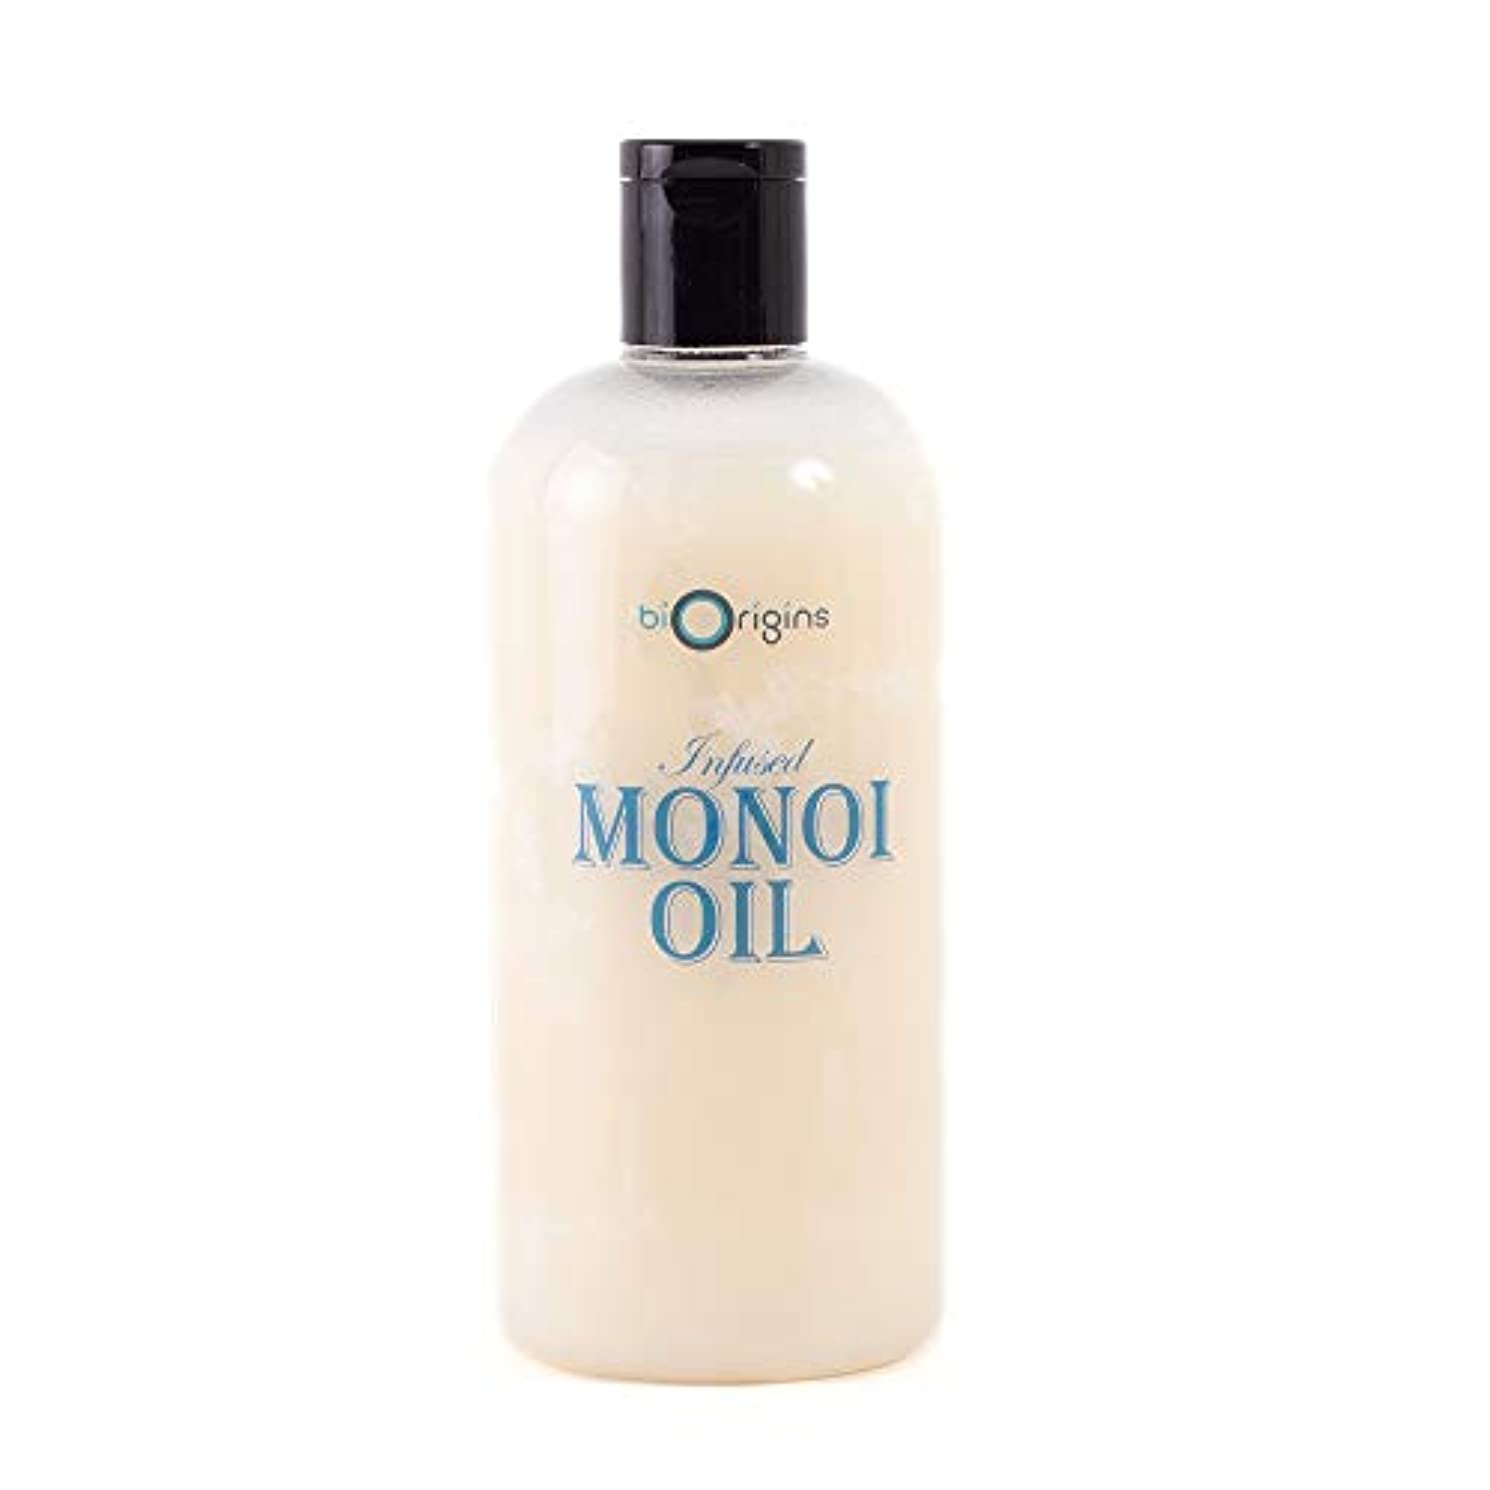 クリーナー麻酔薬蓋Mystic Moments | Monoi Oil Infused - 500ml